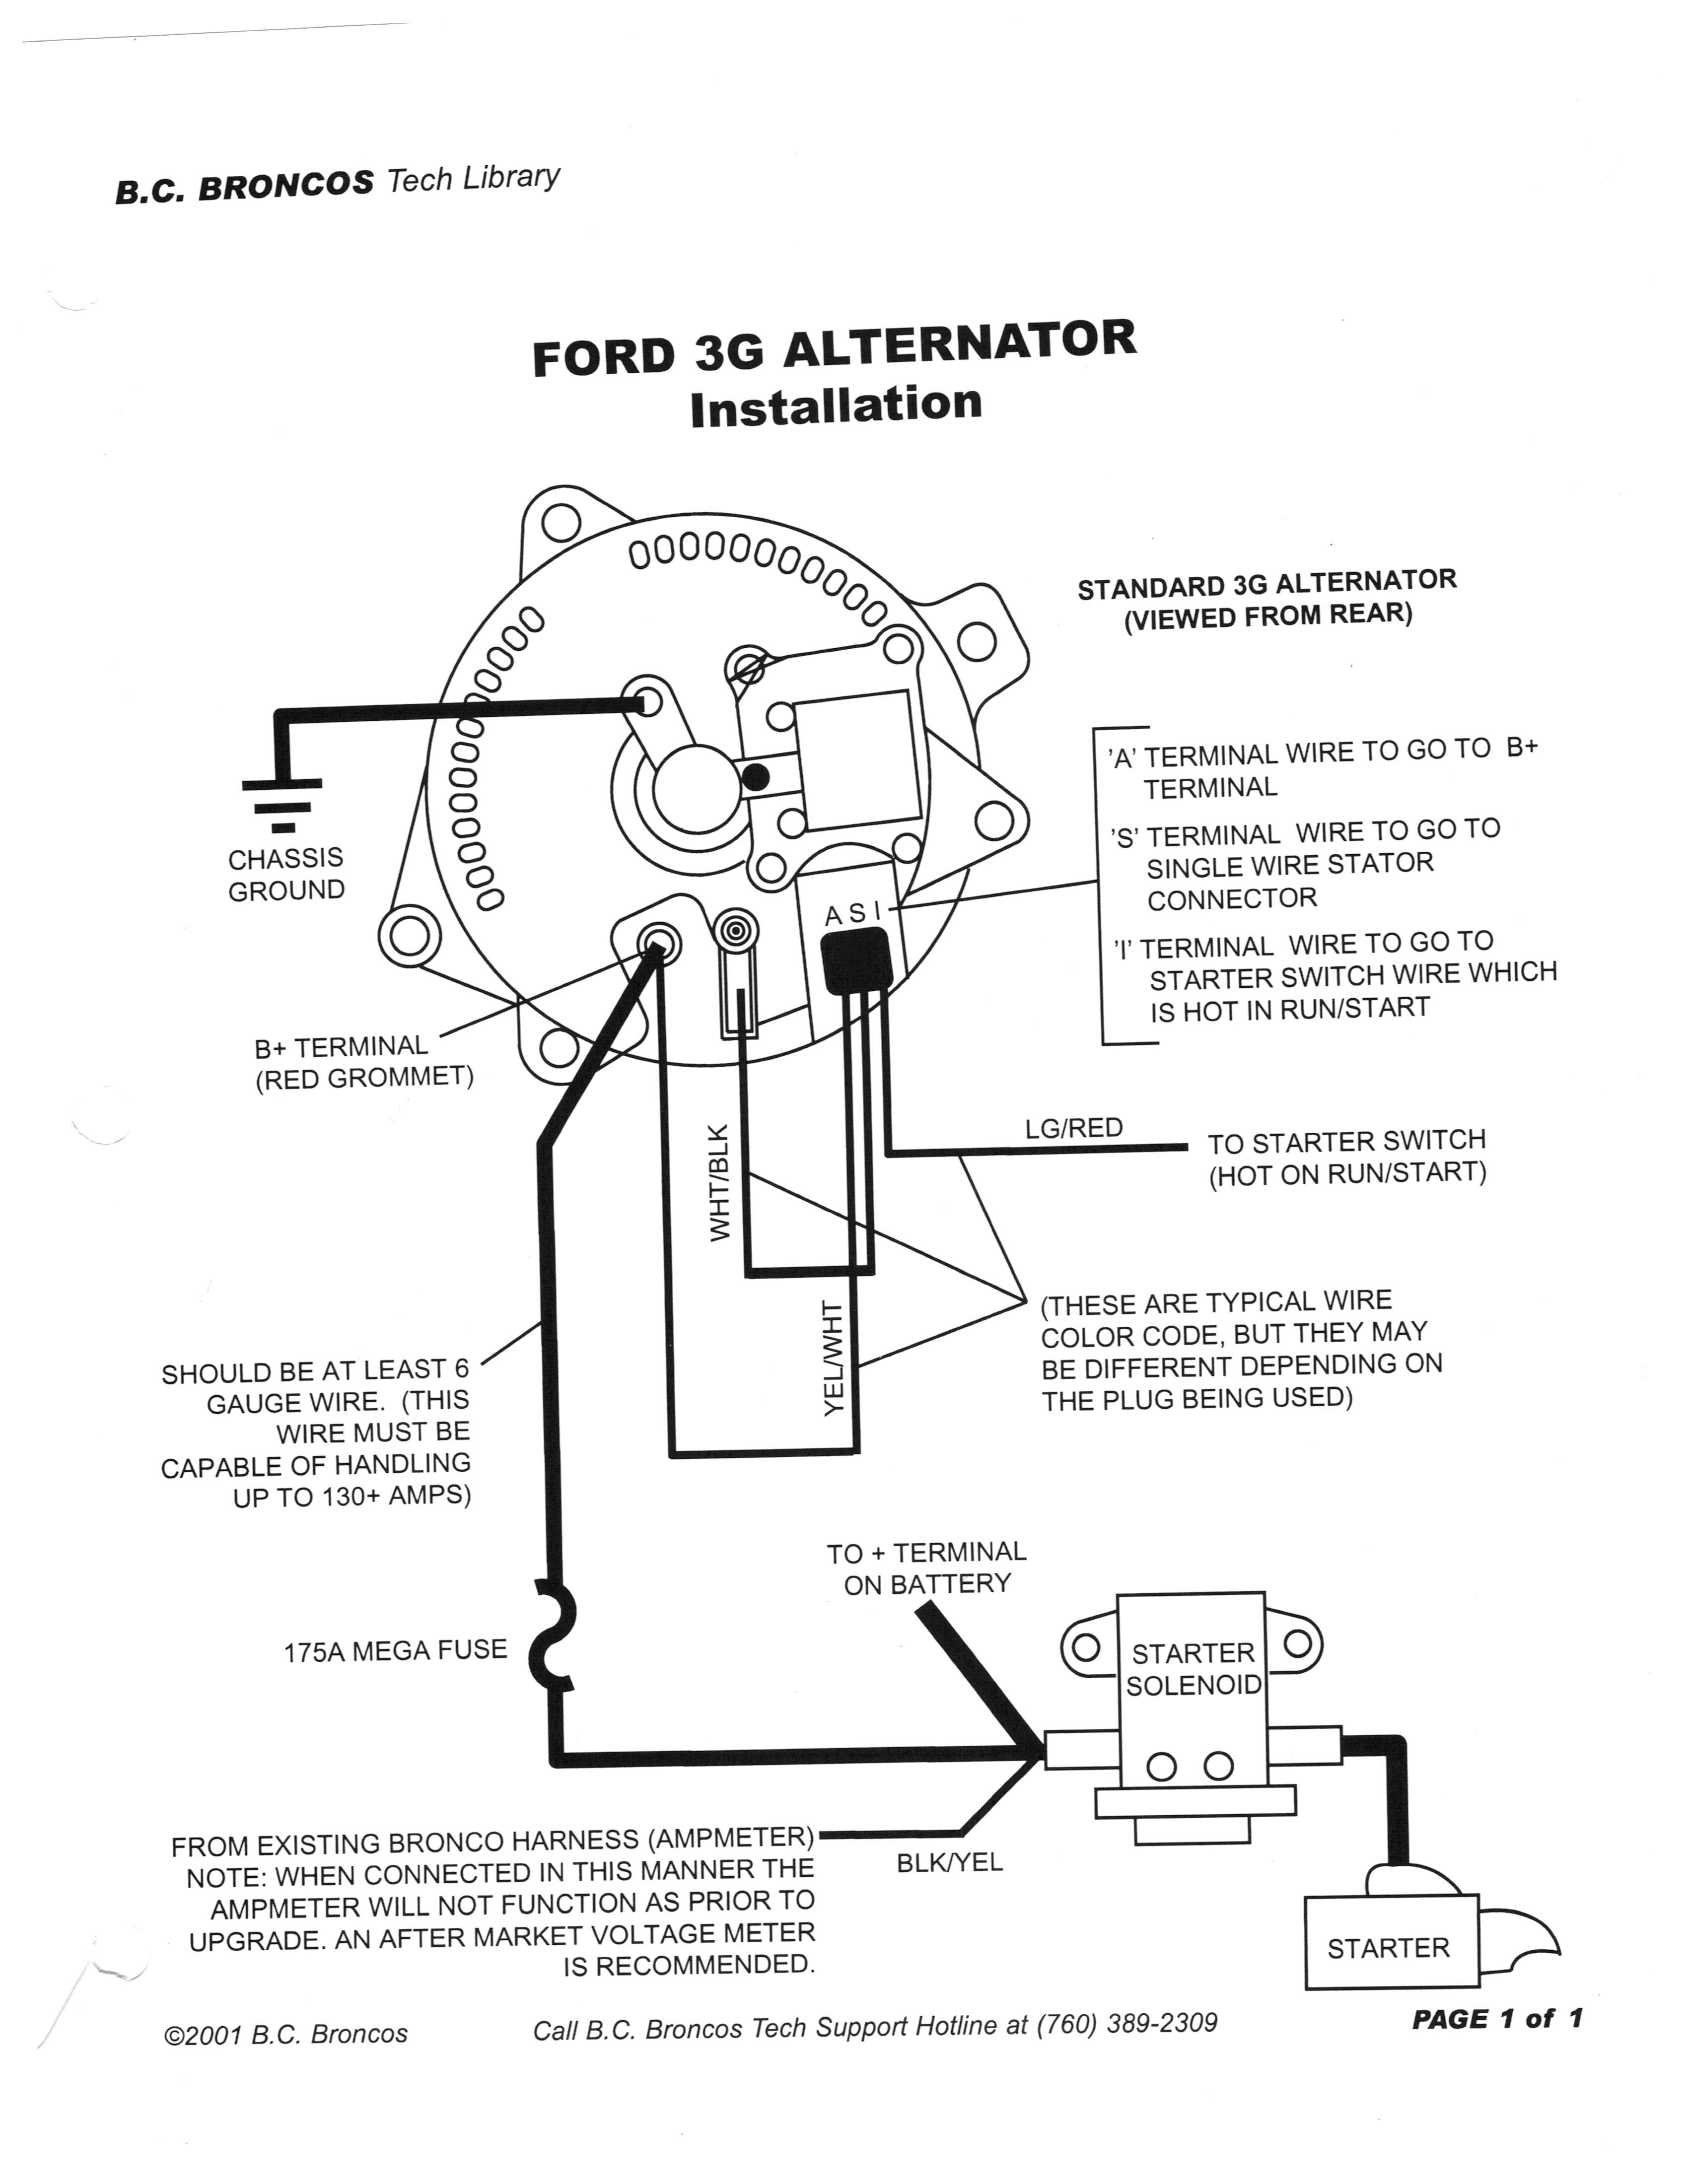 1994 F150 Wiring Diagram Battery And Alternator Library Ford F 150 1972 V8 3g Mustang Forum Ranger Click Image For Larger Version